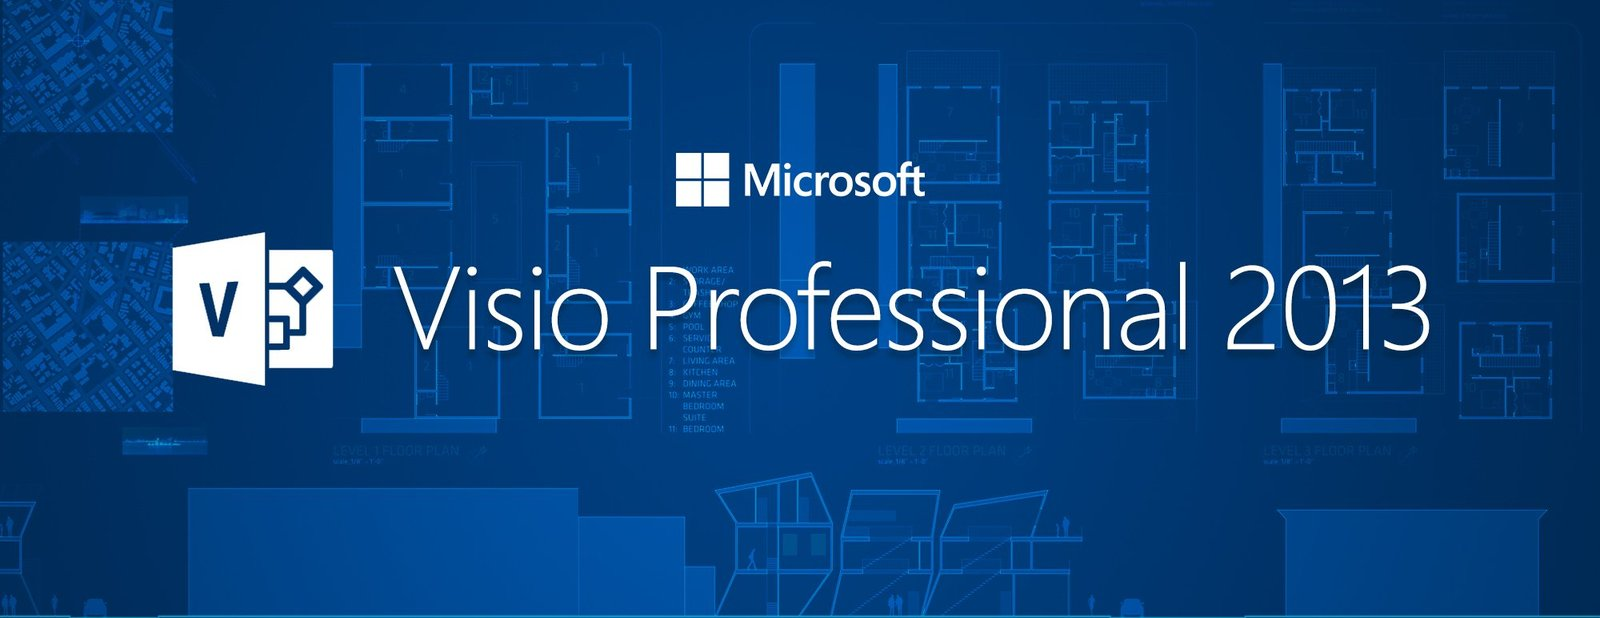 microsoft visio professional 2013 for 5 pc and 50 similar items - Visio Similar